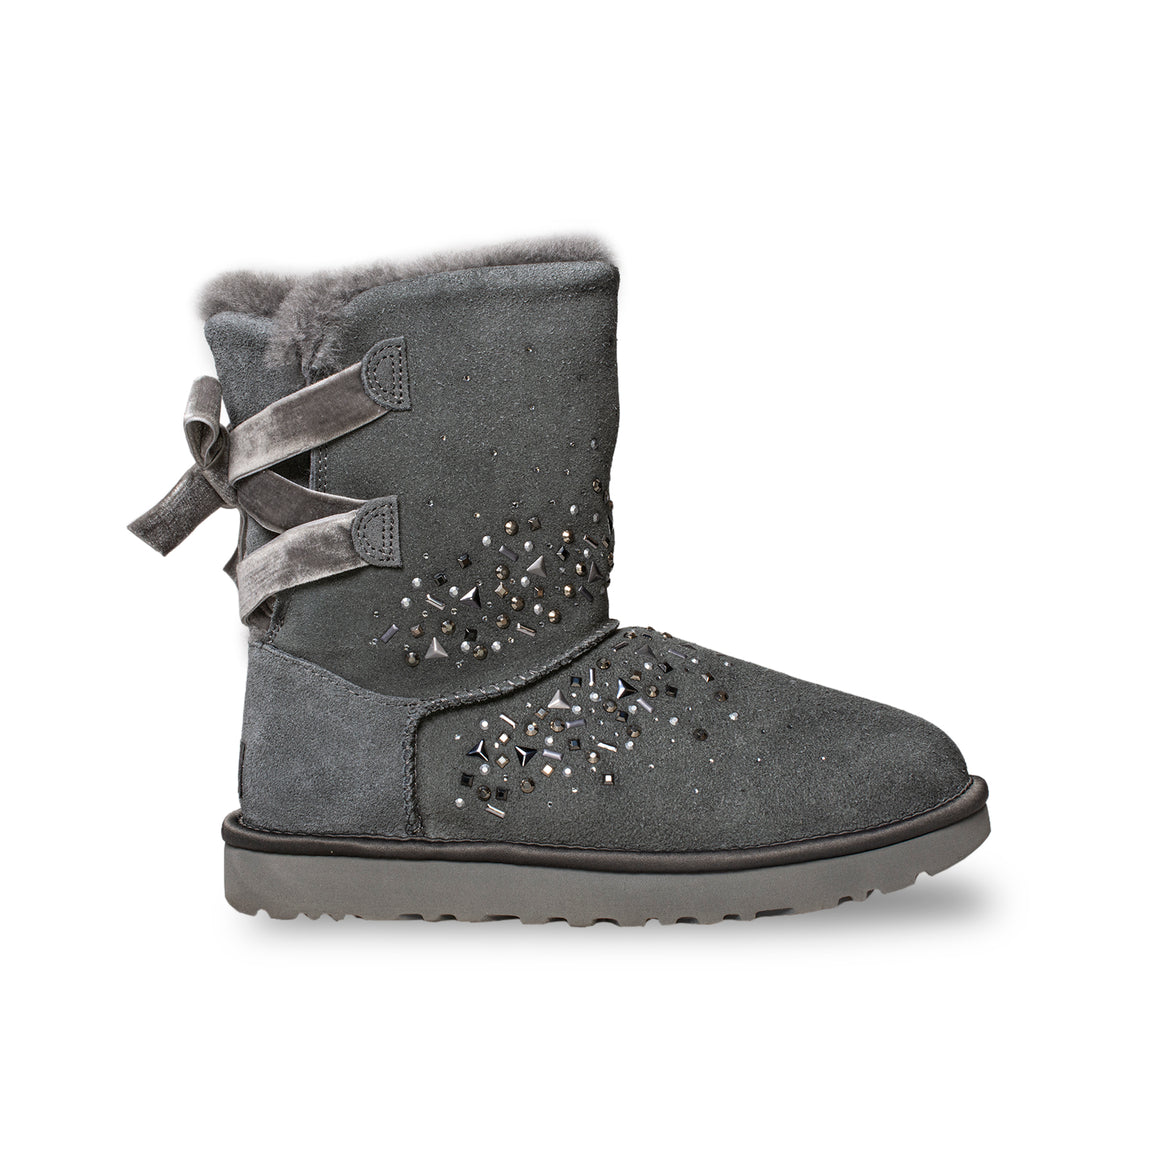 UGG Classic Galaxy Bling Short Charcoal Boots - Women's